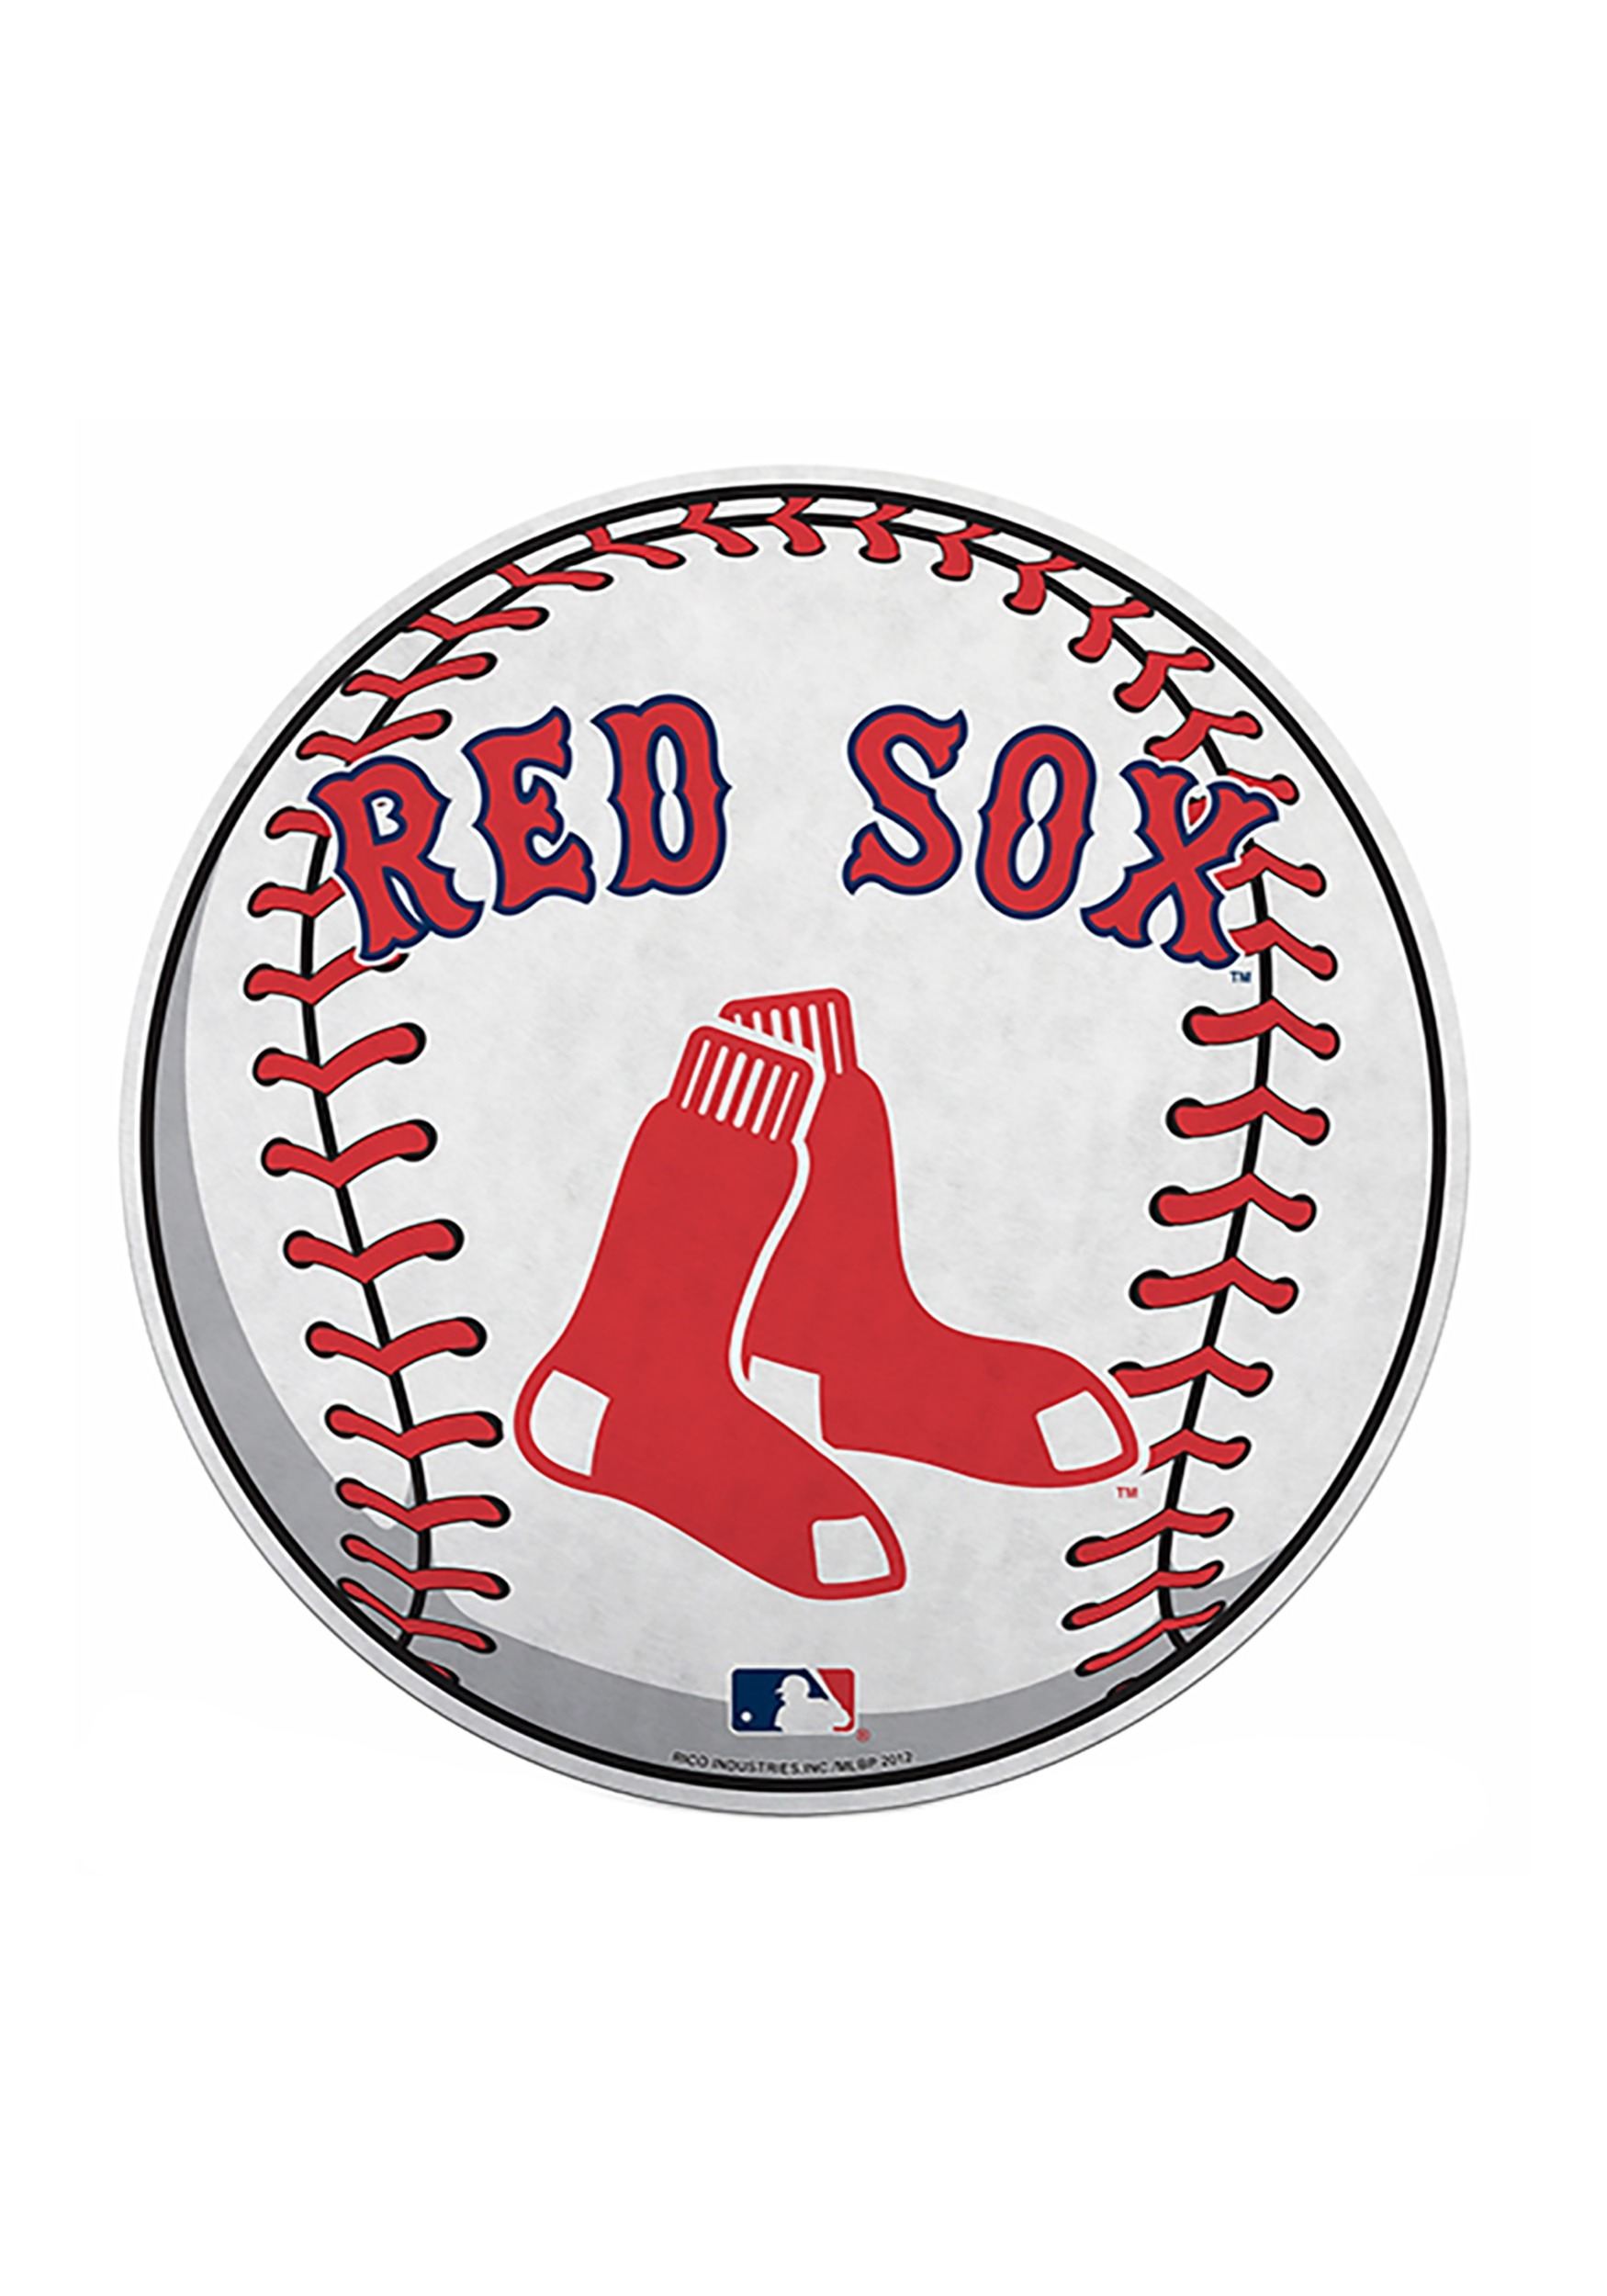 Boston Red Sox MLB Die Cut Baseball Pennant.